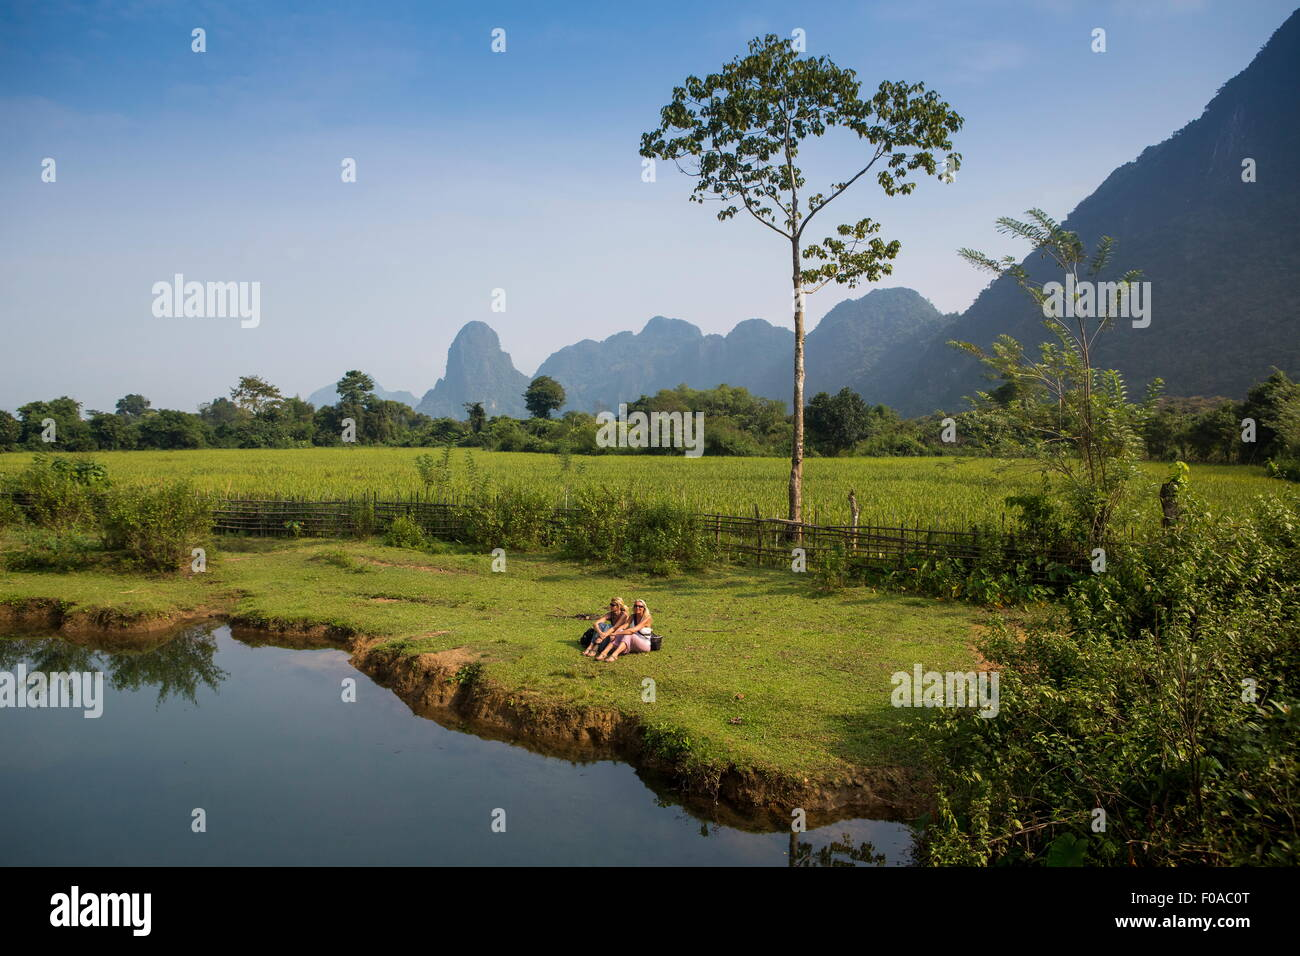 Two female friends relaxing on Nam Song riverbank, Vang Vieng, Laos - Stock Image